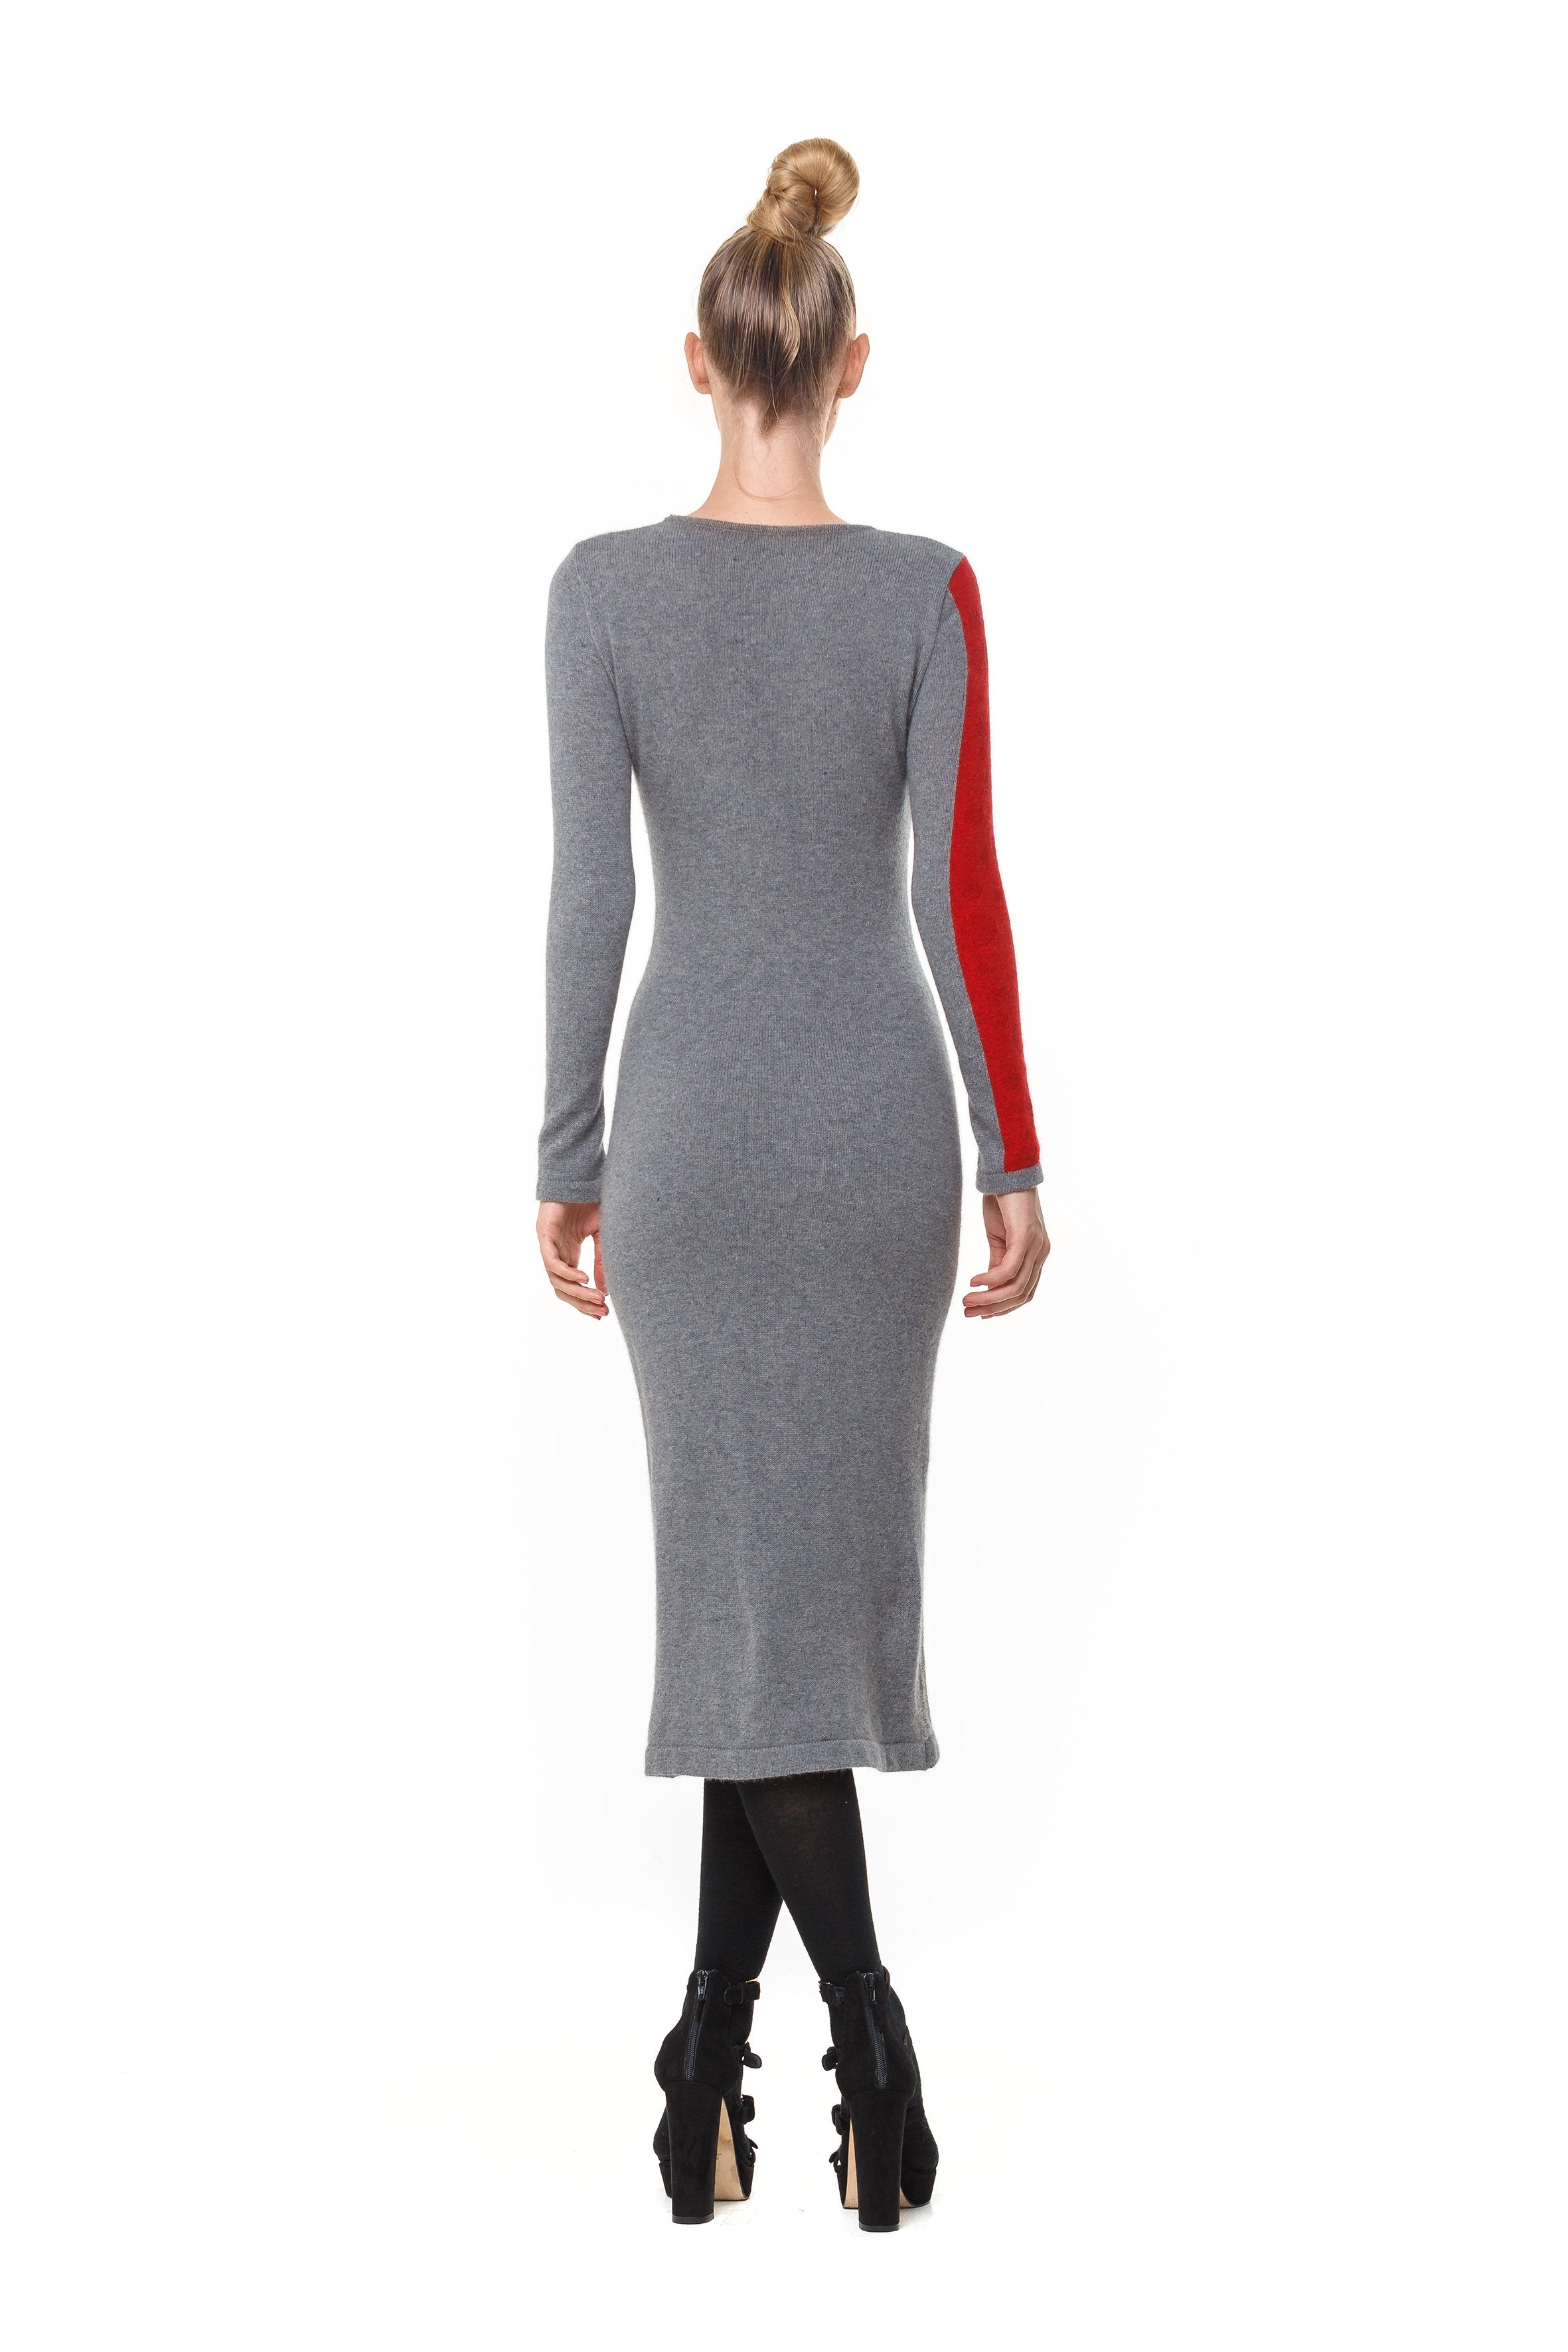 COLOUR BLOCK MIDI - Woolshed Gallery